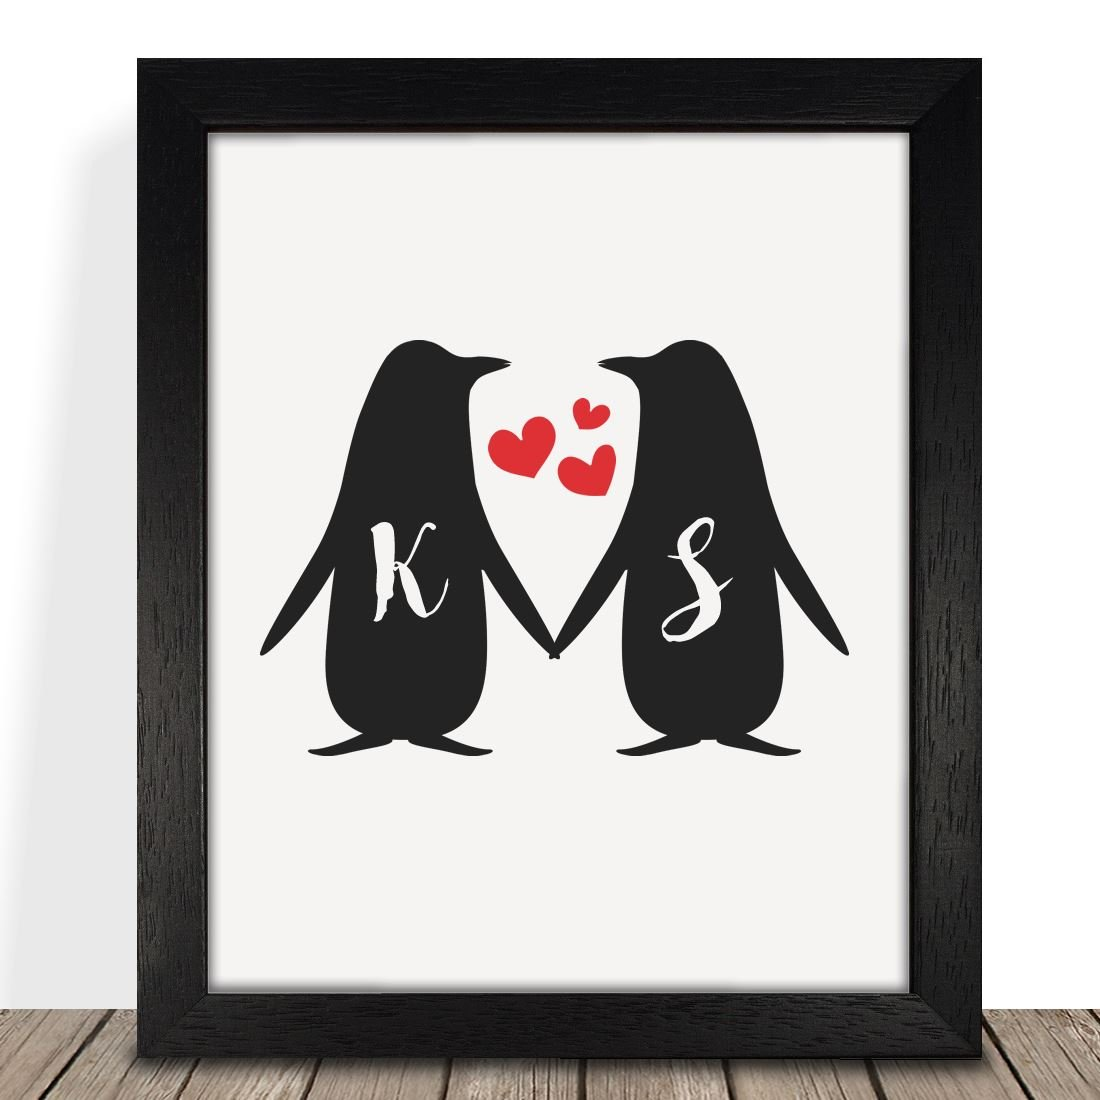 Personalised Presents Gifts For Him Her Husband Wife Couples Boyfriend Girlfriend Wedding Anniversary Valentines Day Christmas Xmas Love Penguins Initials Framed Prints Posters Home Decor Premio Printz